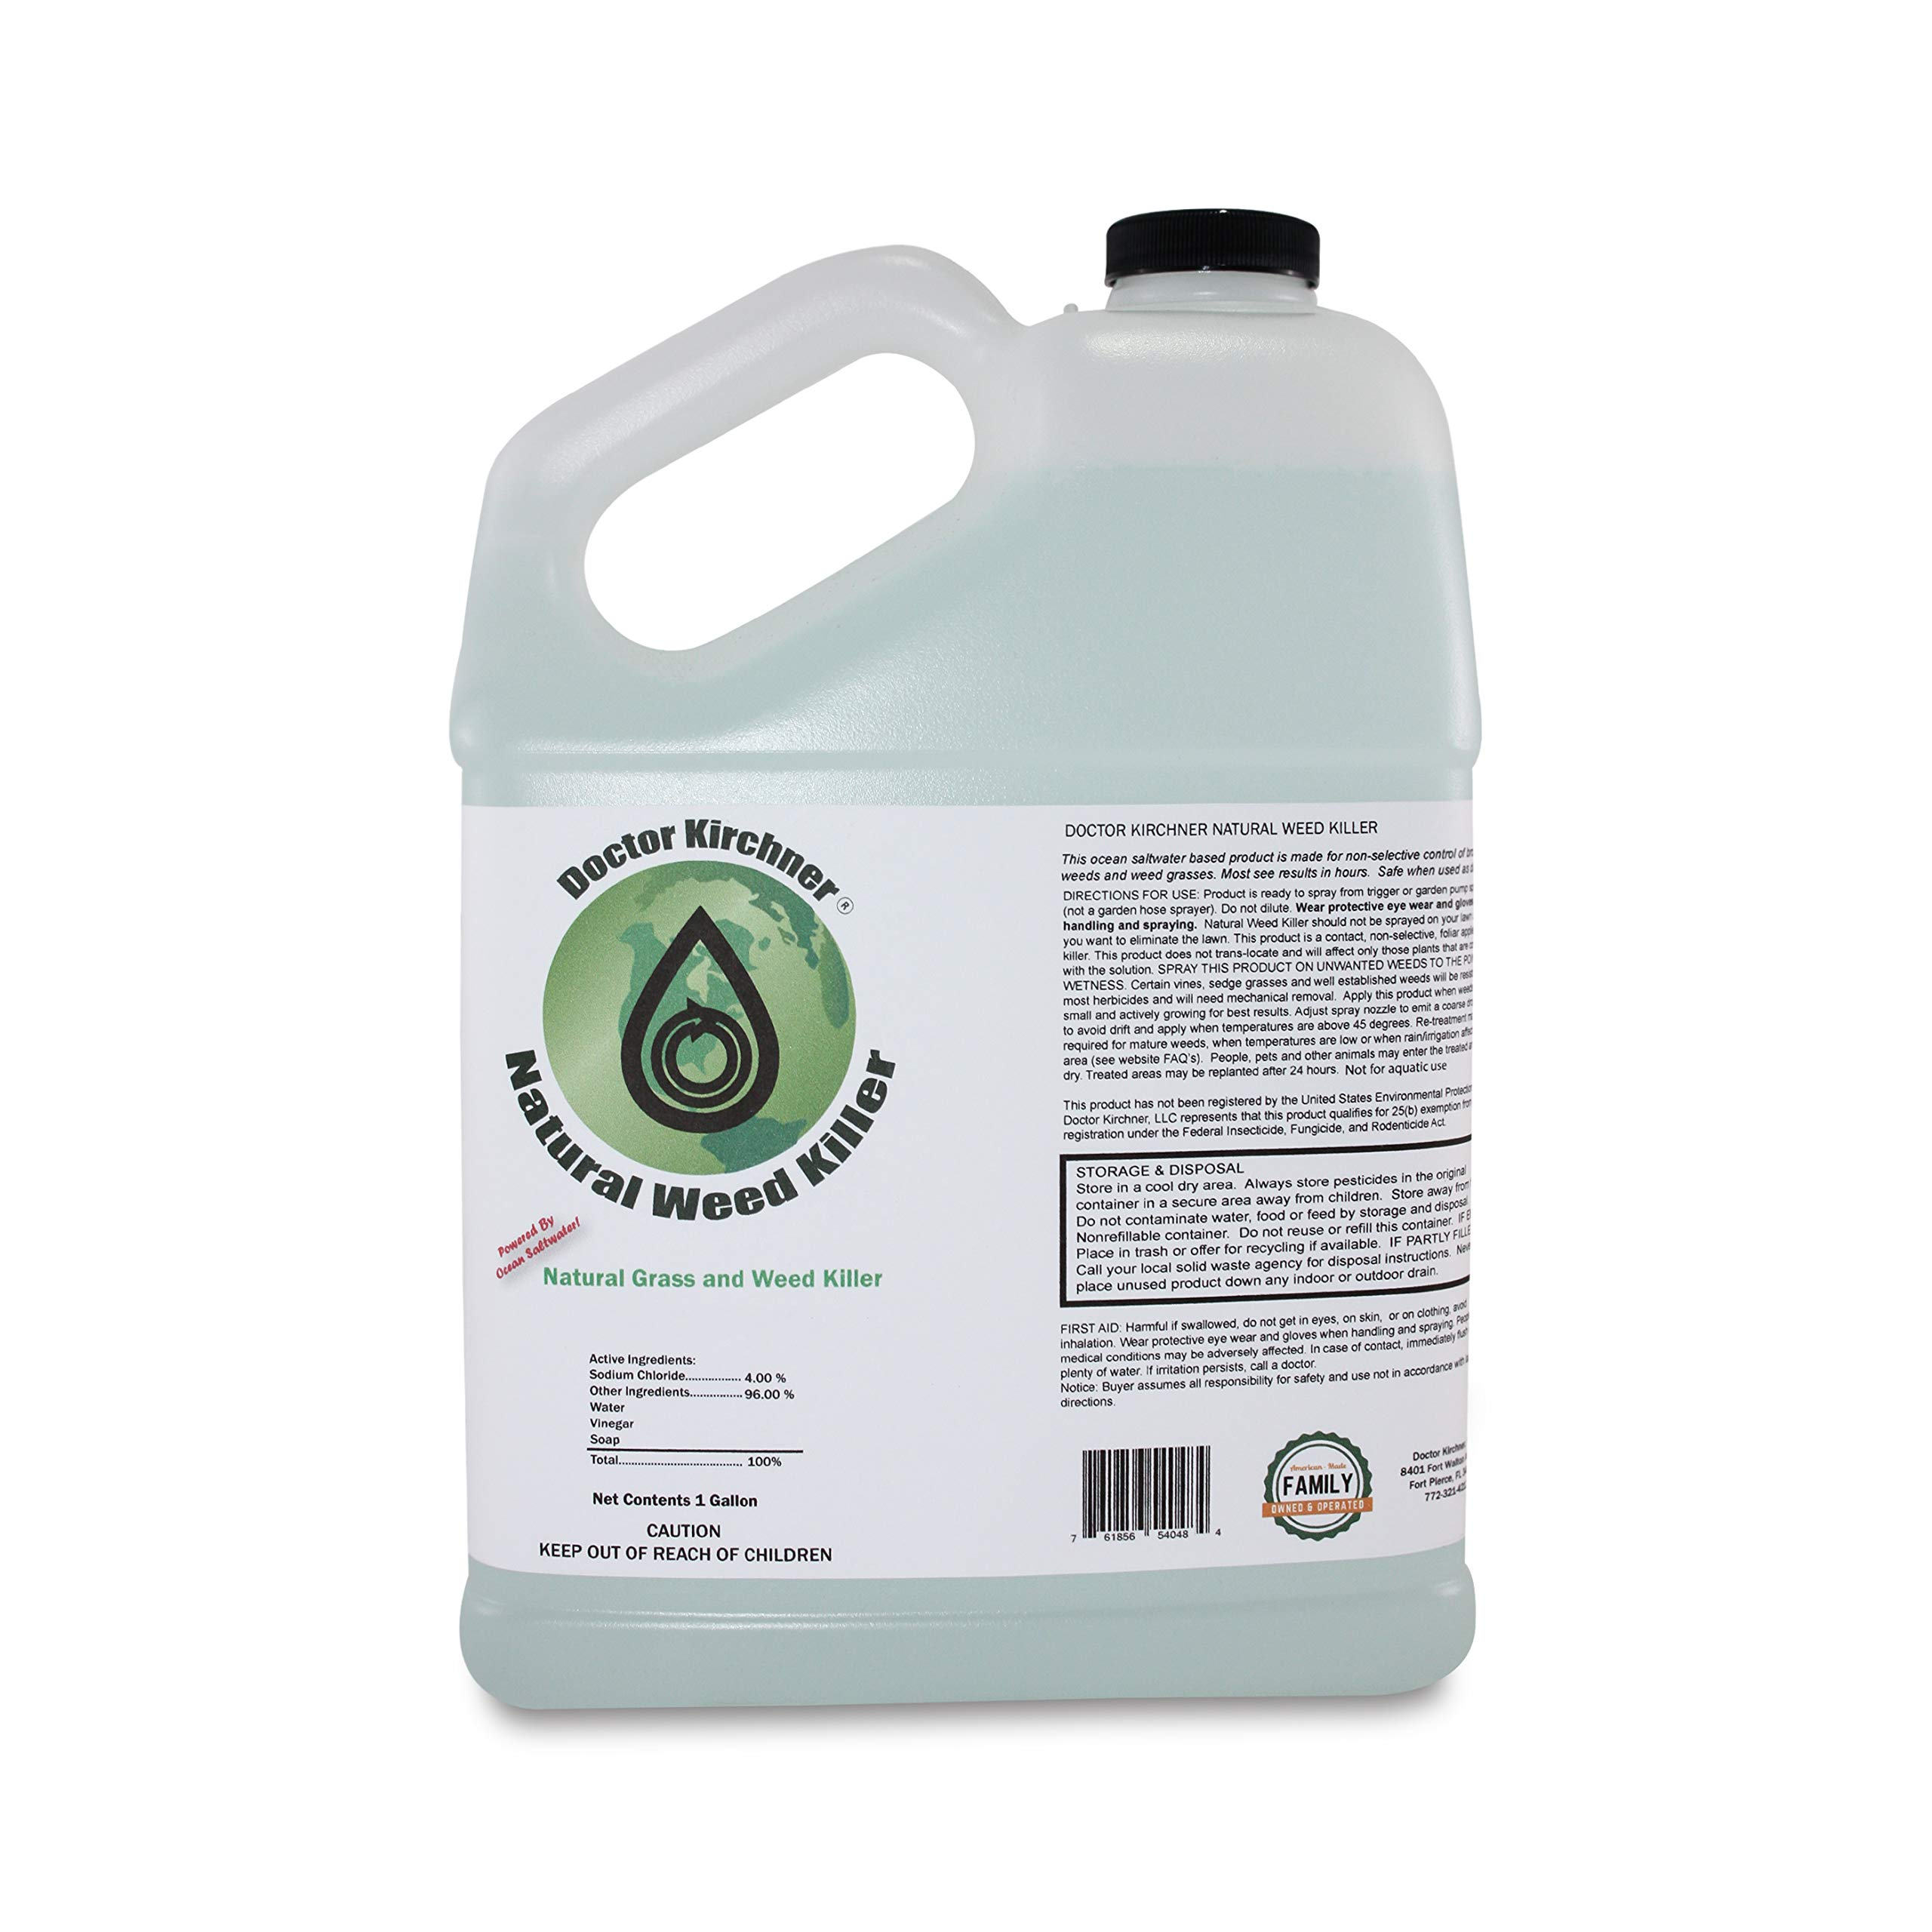 Natural Weed Killer Made with Ocean Water and Commercial Food Grade Vinegar Pet Friendly (1 Gallon)